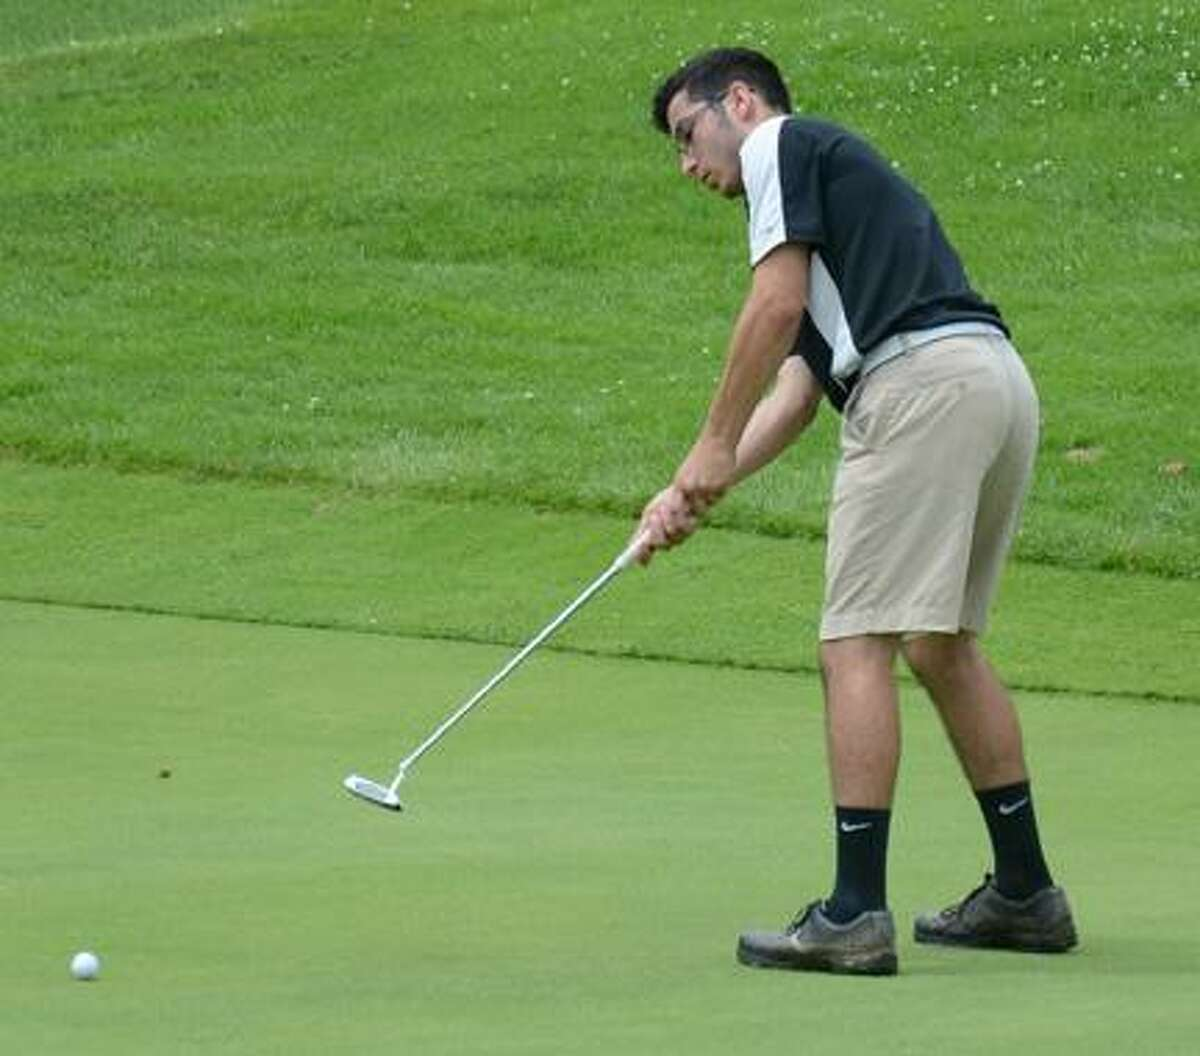 JESSI PIERCE - ONEIDA DAILY DISPATCH Camden's Evan Kessler putts during the Mohawk Valley Junior Golf Tour event at Valley View on Monday.